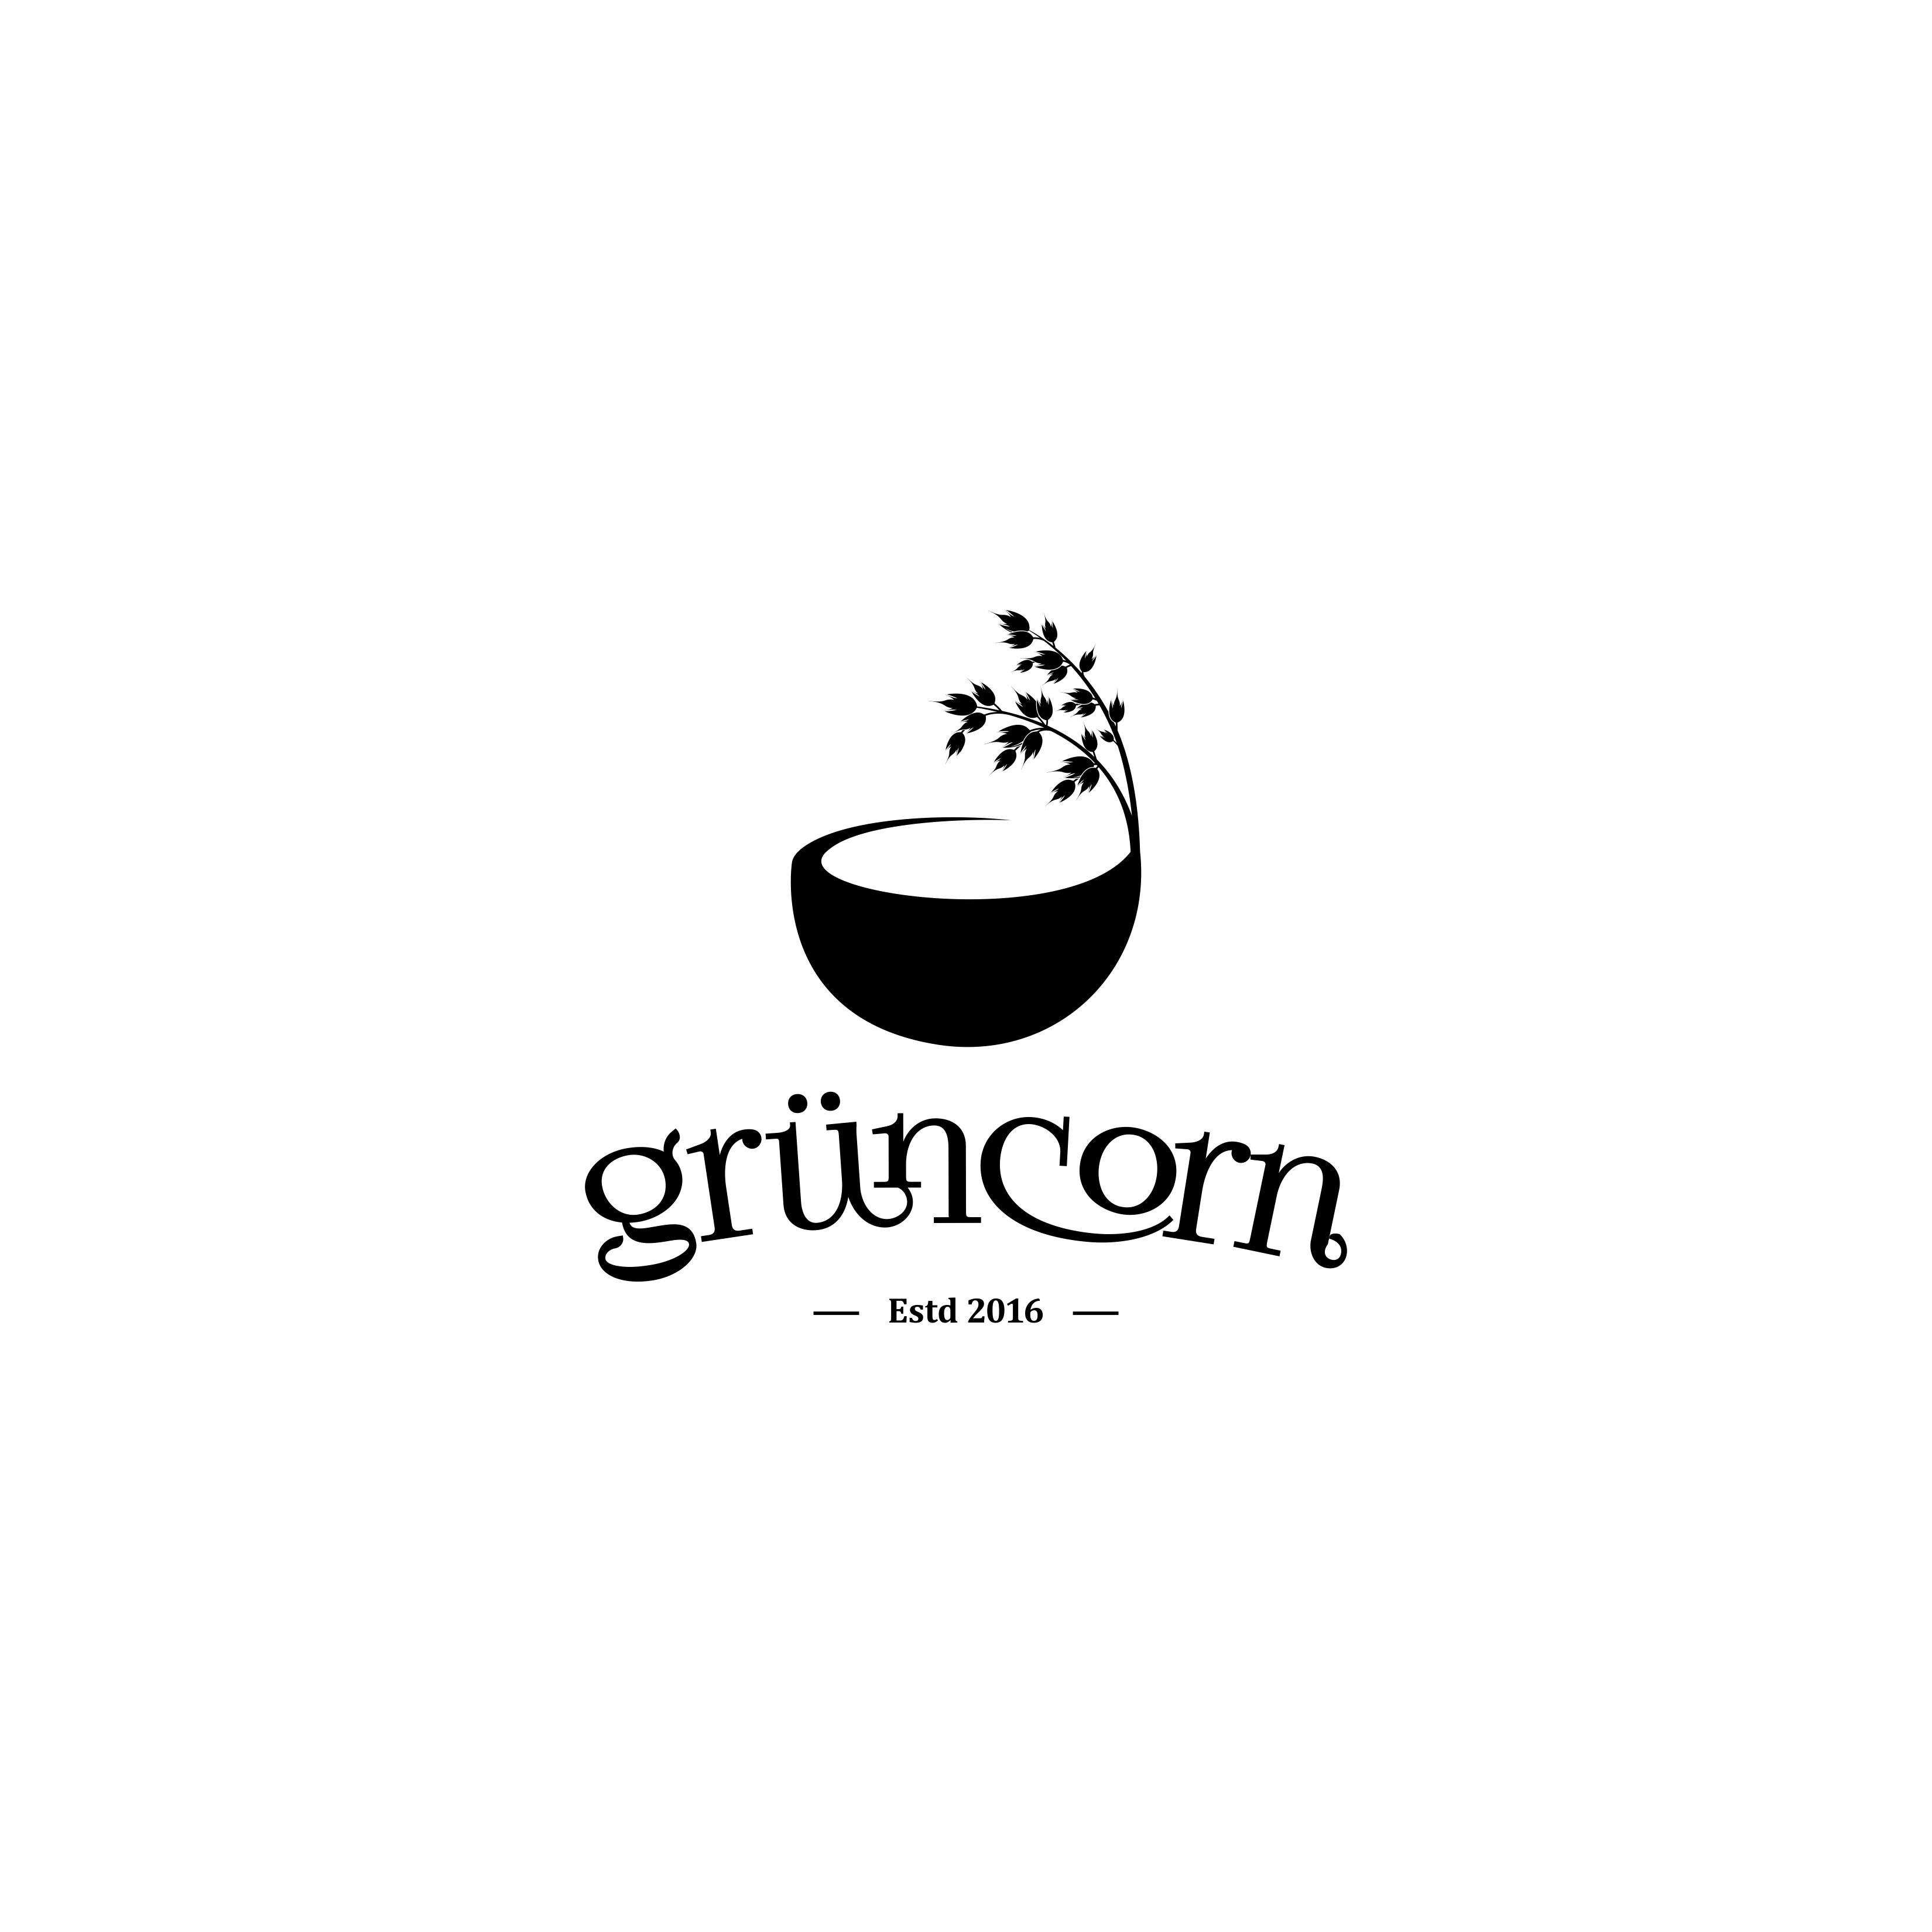 Please create a nice, fresh and inviting logo for a new Food-Start-up called grüncorn